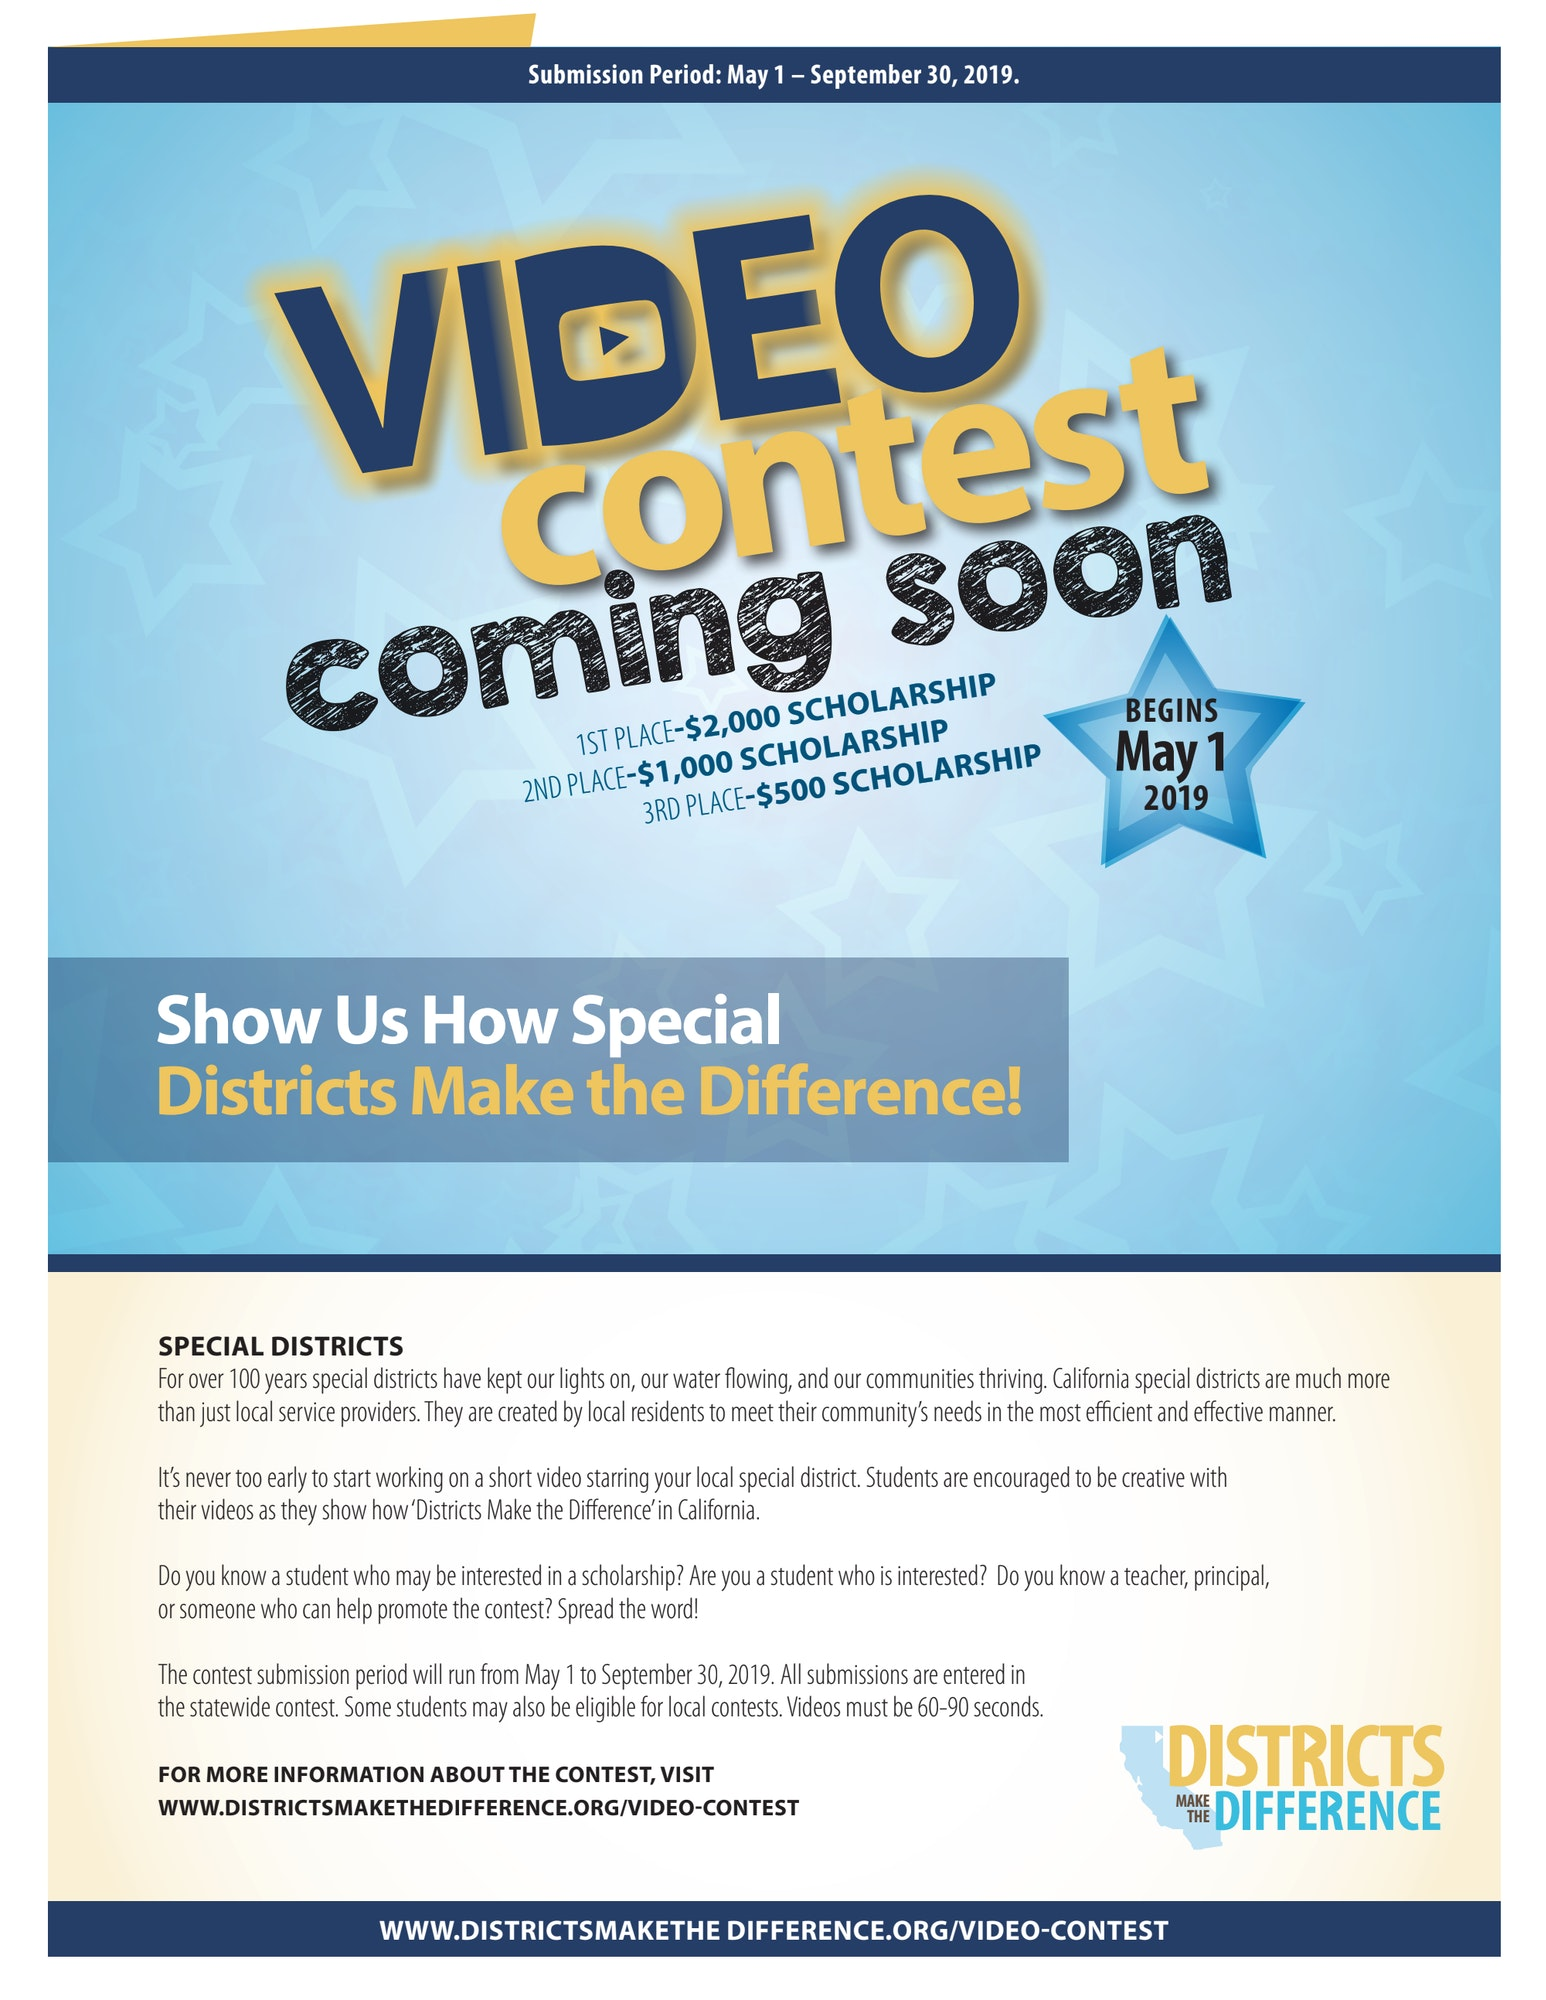 Video Contest flyer for scholarship opportunity featuring special districts